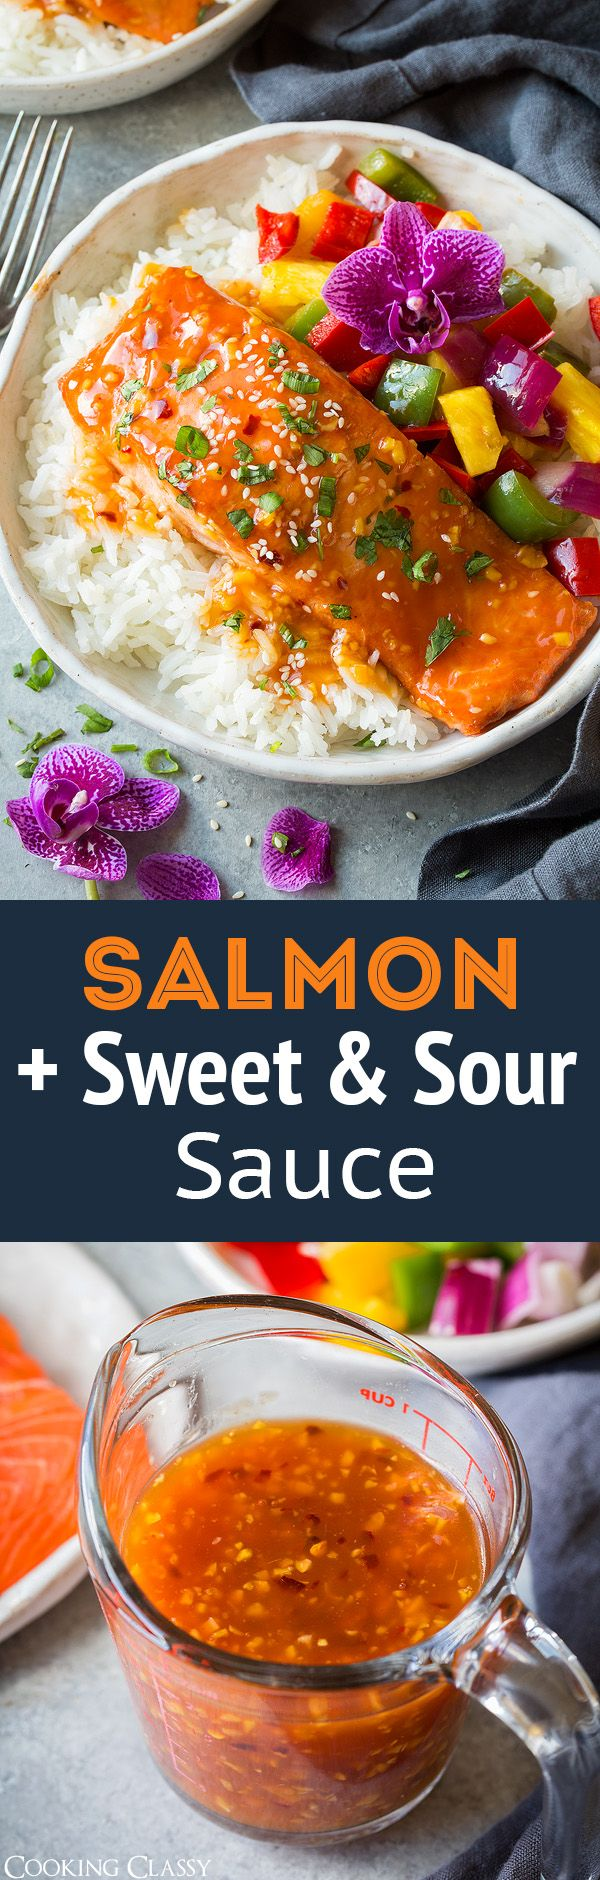 You can't go wrong here with this simple island style Pan Seared Salmon with Sweet and Sour Sauce! It's quick and easy and perfectly delicious!